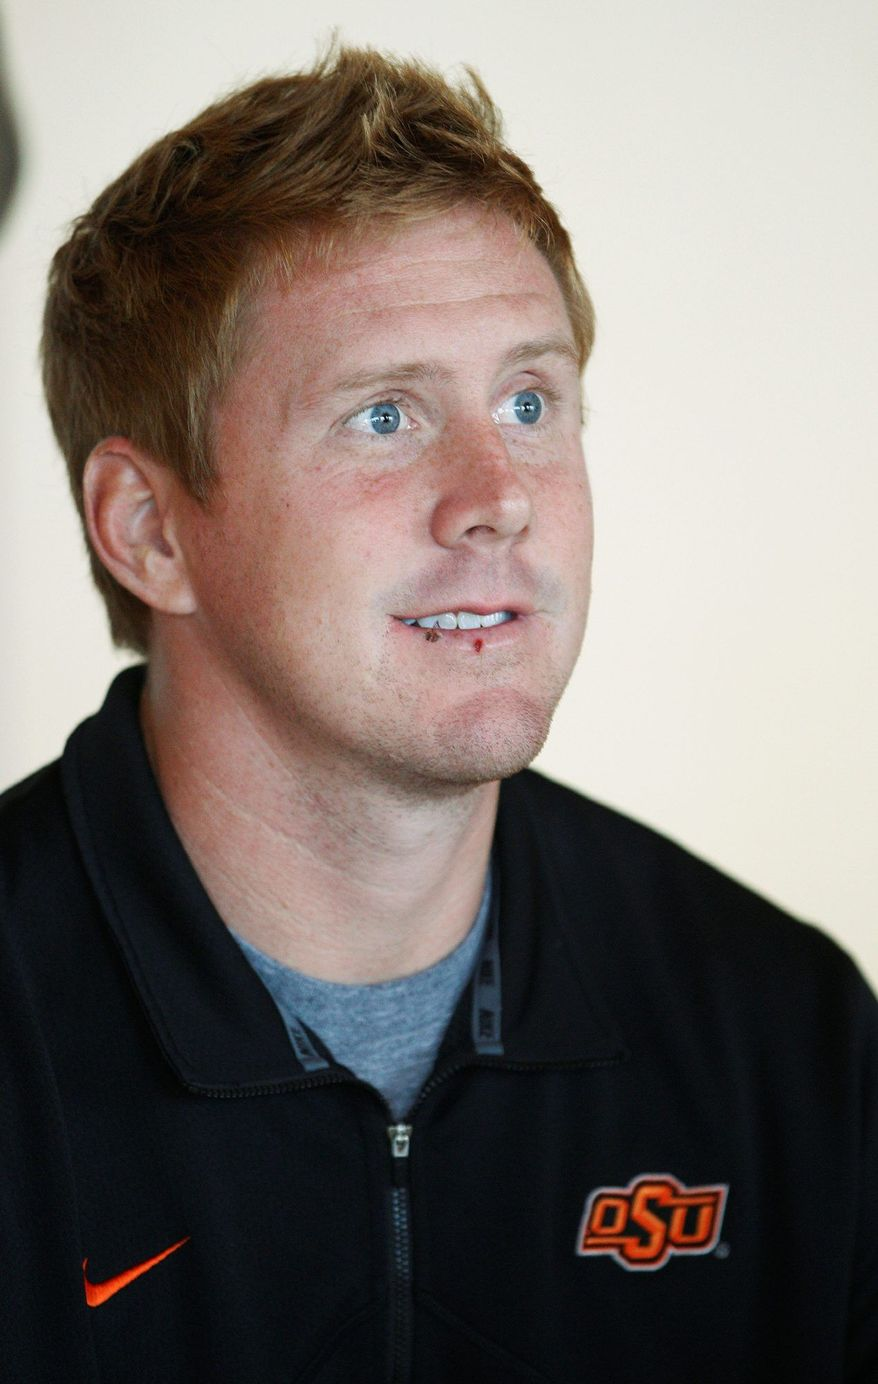 Oklahoma State quarterback Brandon Weeden answers a question during a news conference in Stillwater, Okla., Monday, Nov. 14, 2011. Weeden ranks third in the nation with 363.5 yards passing per game. (AP Photo/Sue Ogrocki)